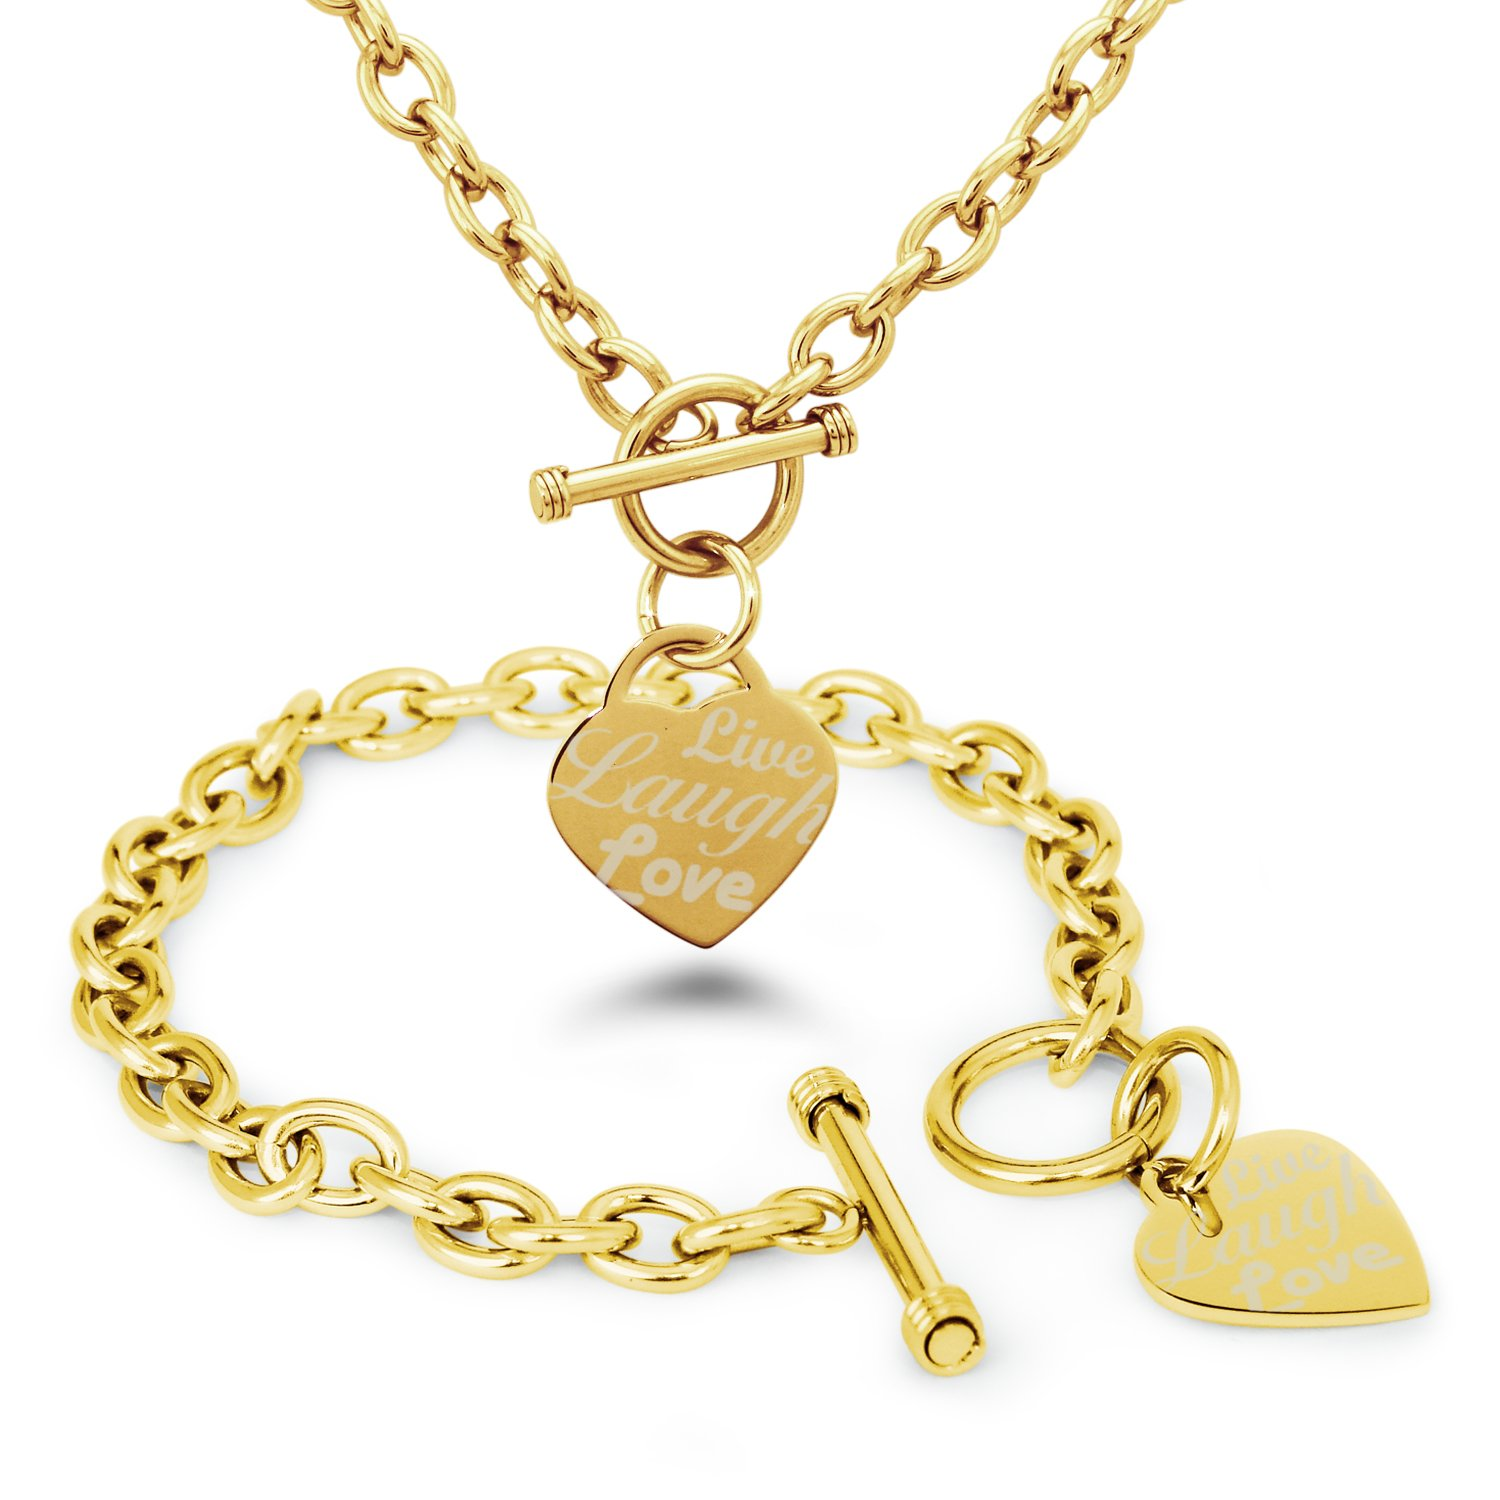 Tioneer Gold Plated Stainless Steel Live Laugh Love Engraved Heart Tag Charm, Bracelet Necklace Set